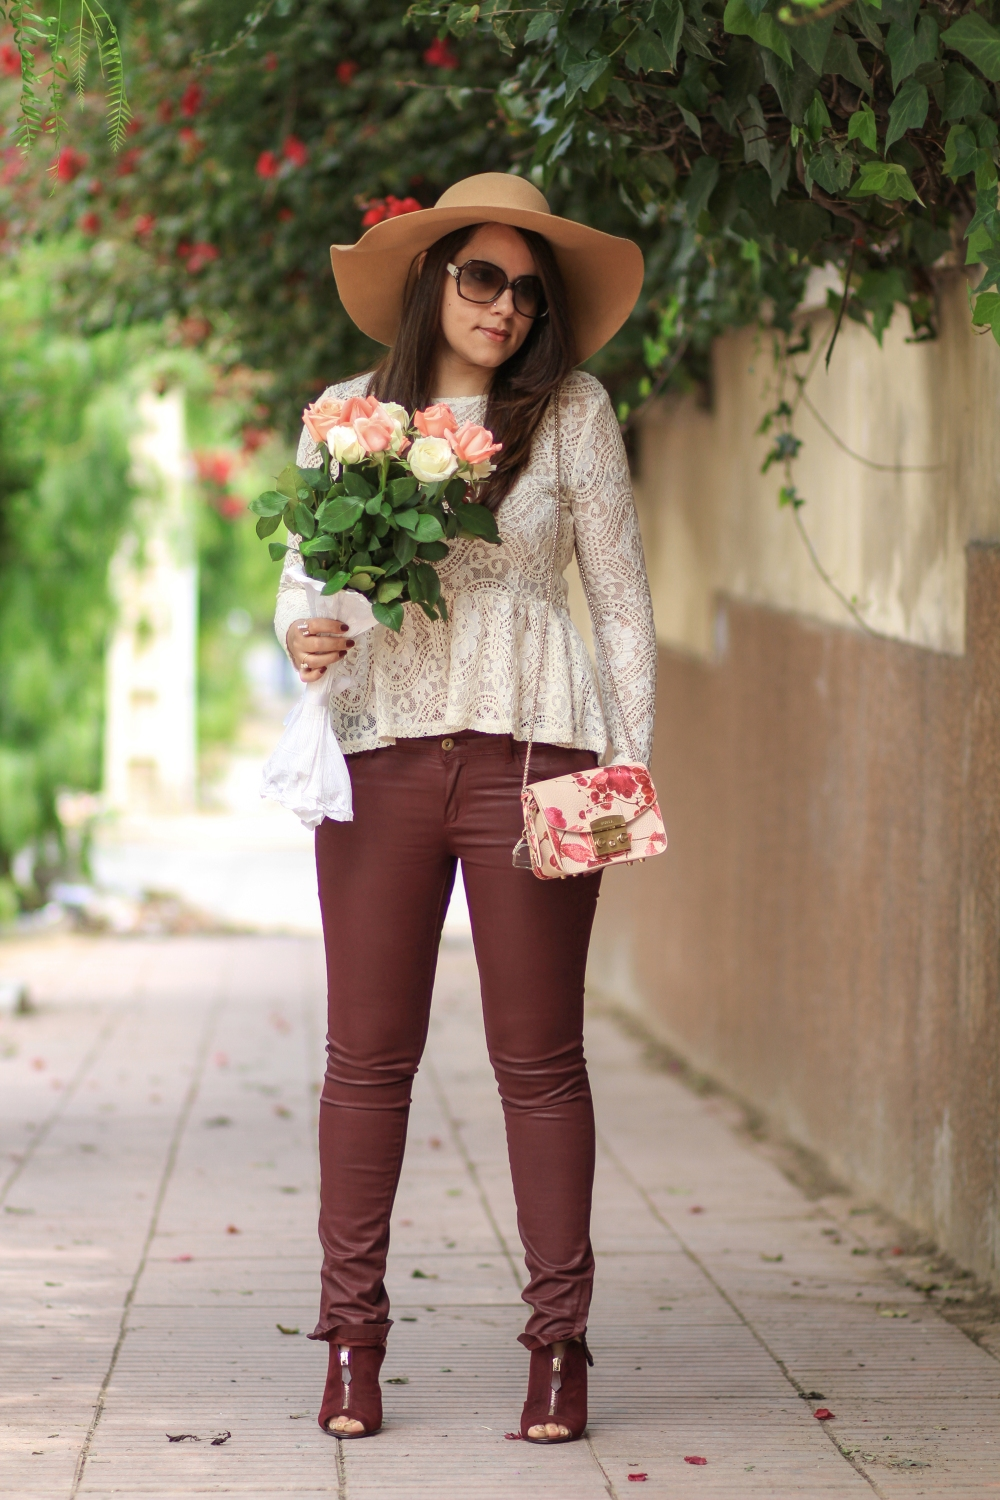 Lace-&-Flowers-mode-blog-chiccarpediem-mode-